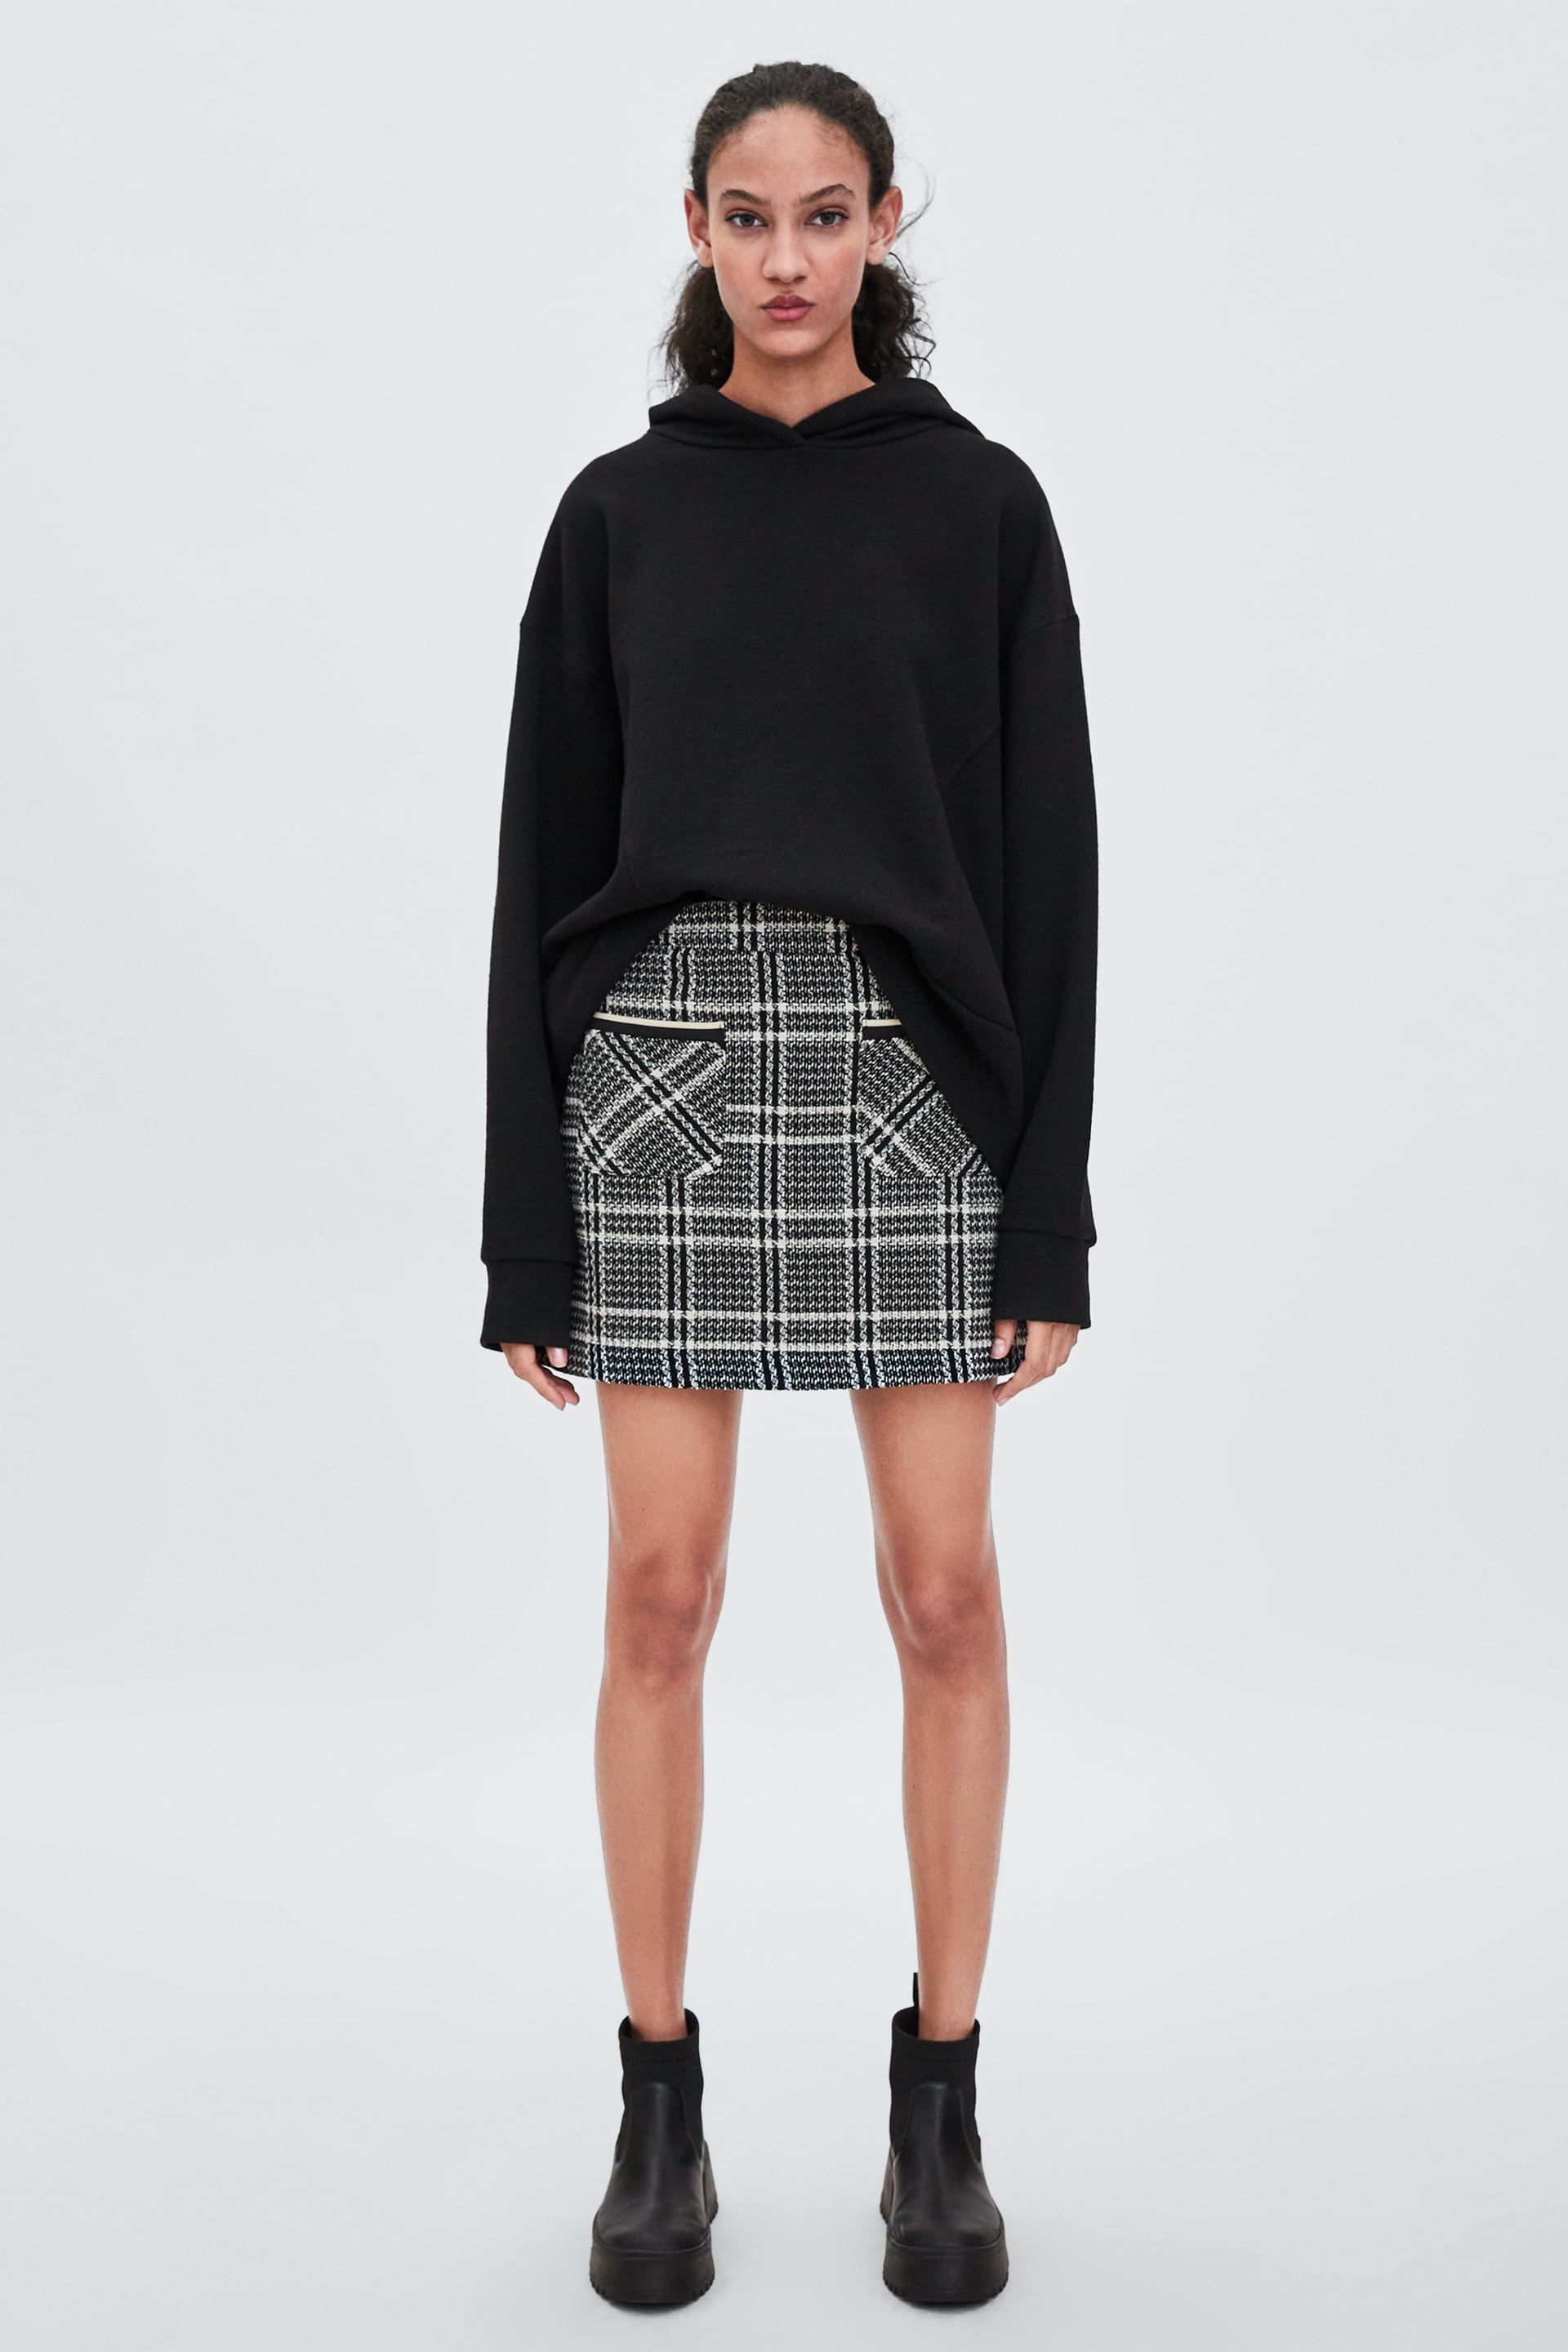 ef3e89a1 Image 1 of TWEED MINI SKIRT WITH POCKETS from Zara | fashion | Tweed ...